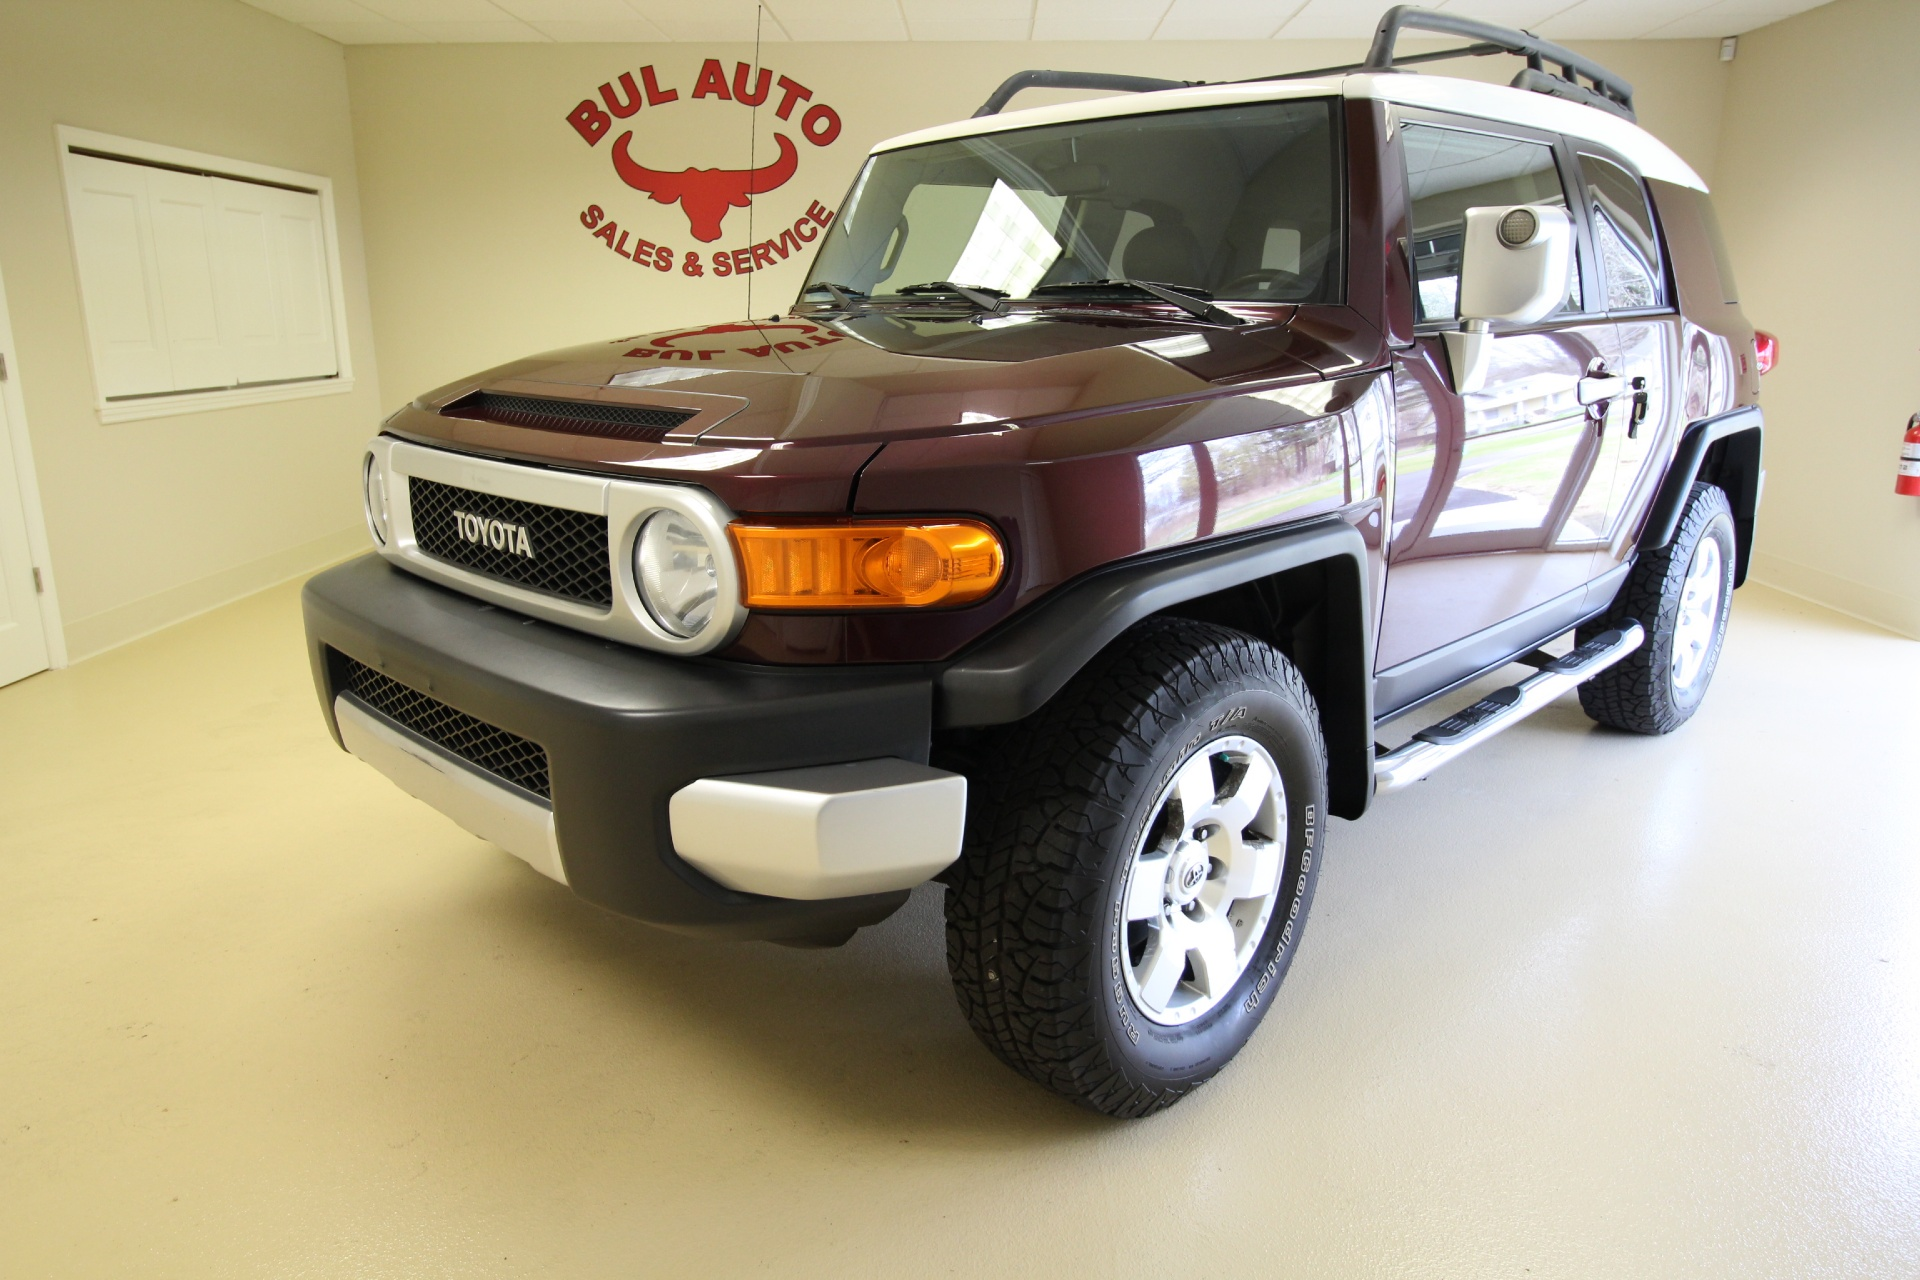 Used 2007 Toyota FJ Cruiser 1 OWNER,SUPER CLEAN,LOW MILES,RARE MANUAL.  Click Here for Fullscreen